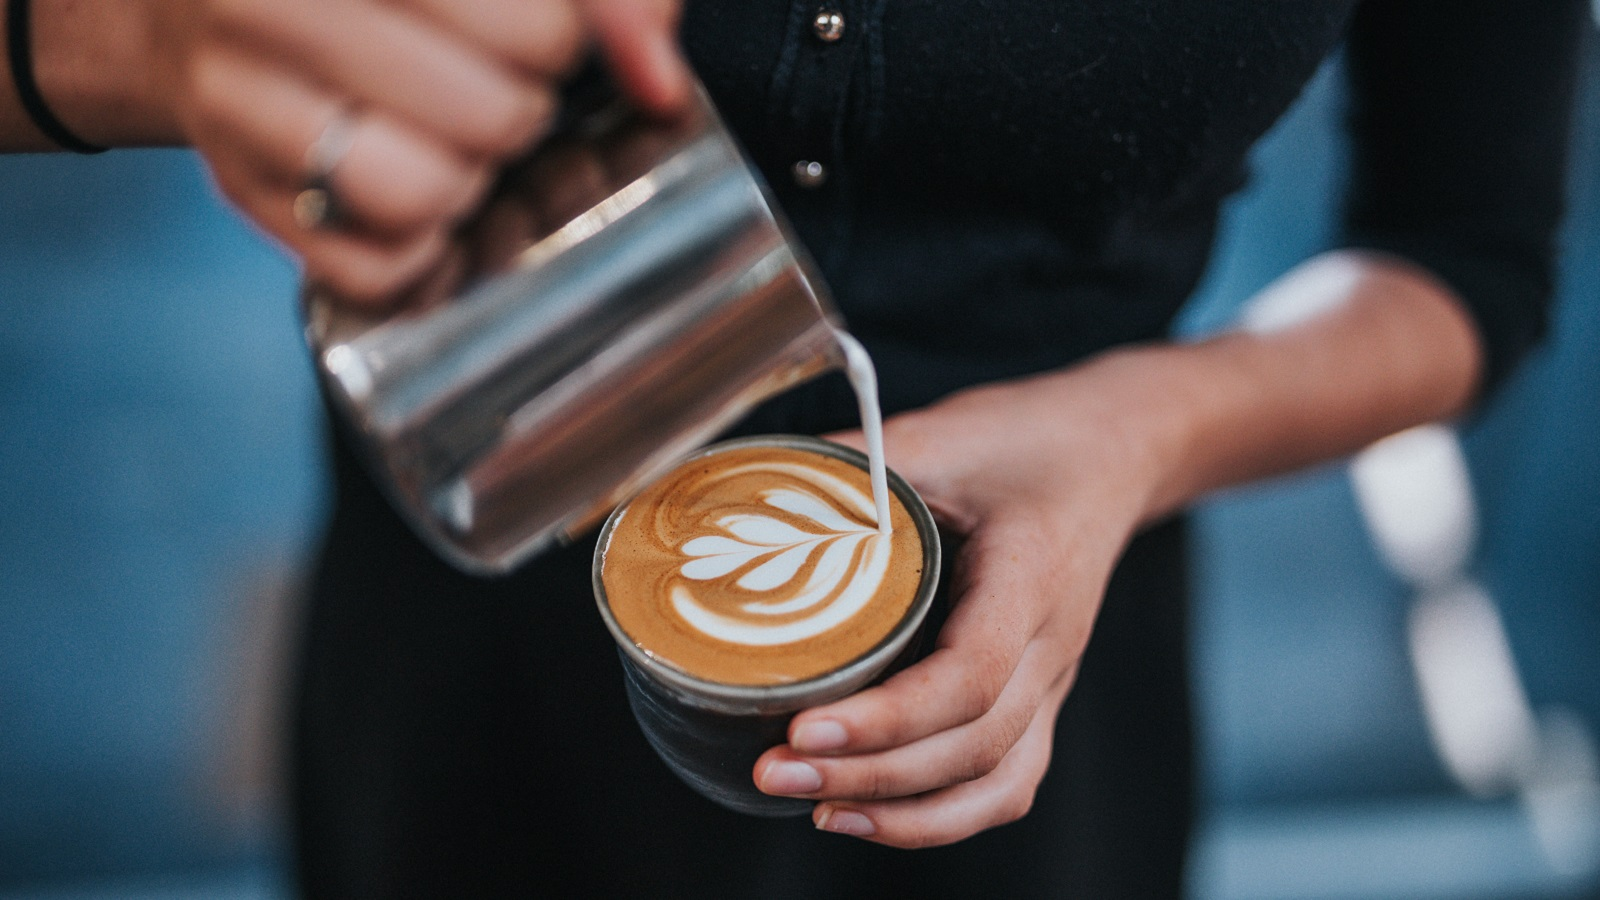 making an ethical coffee